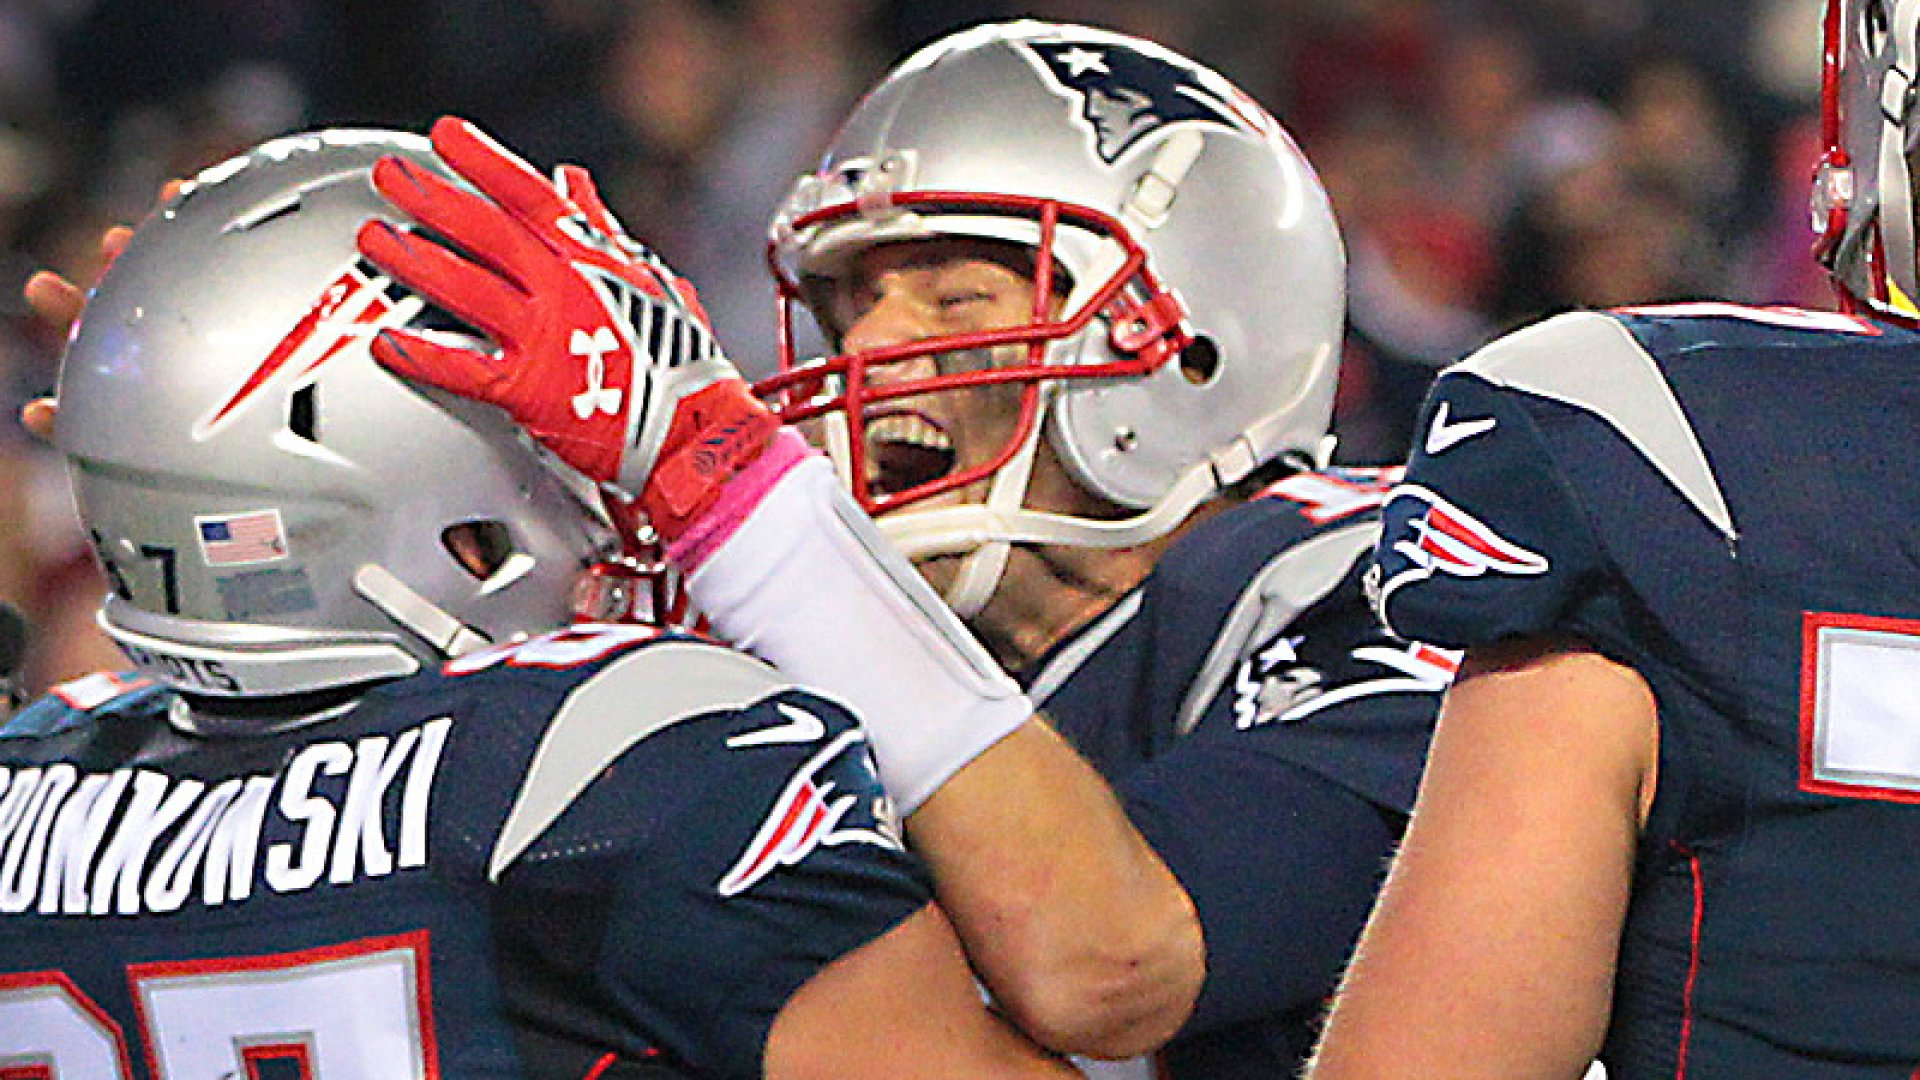 Tom Brady's Demise Was Greatly Exaggerated